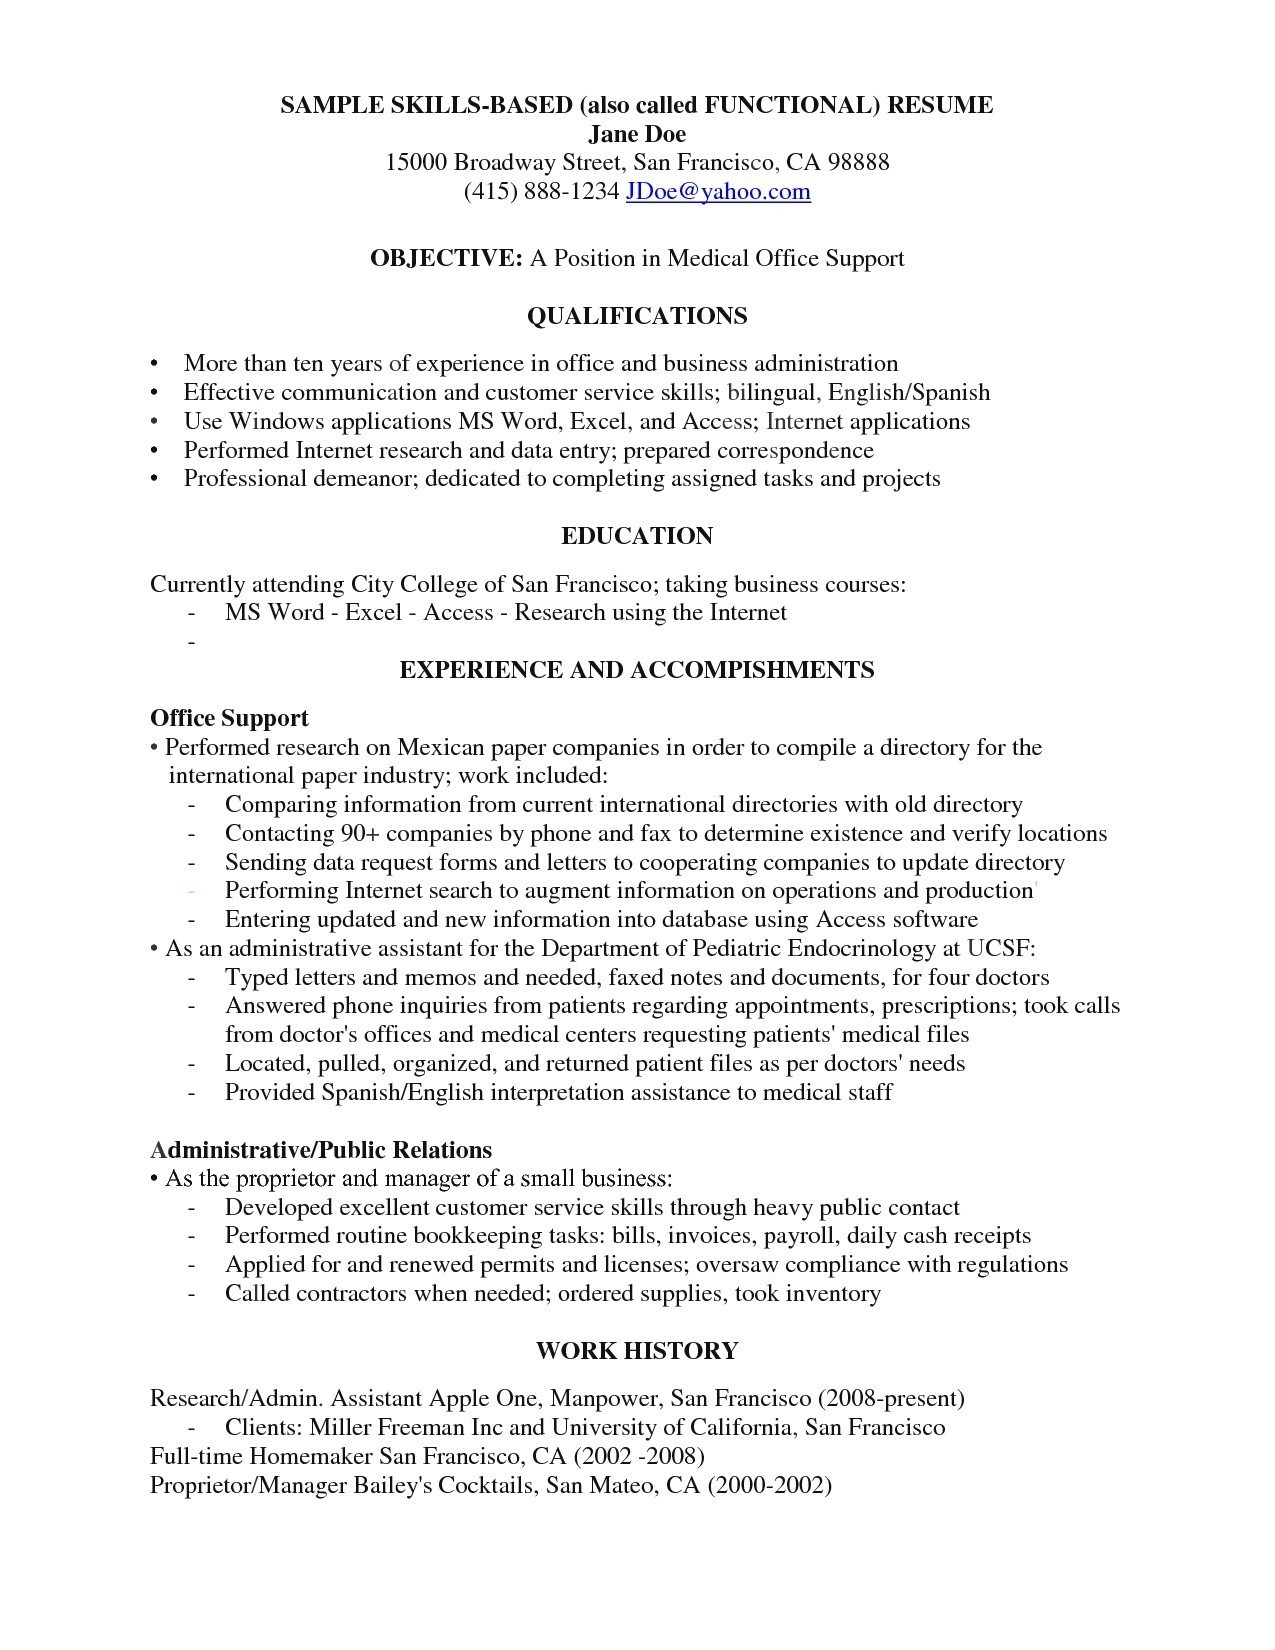 Resume Objective Examples  12 Caregiver Resume Objective Examples Samples Resume Database